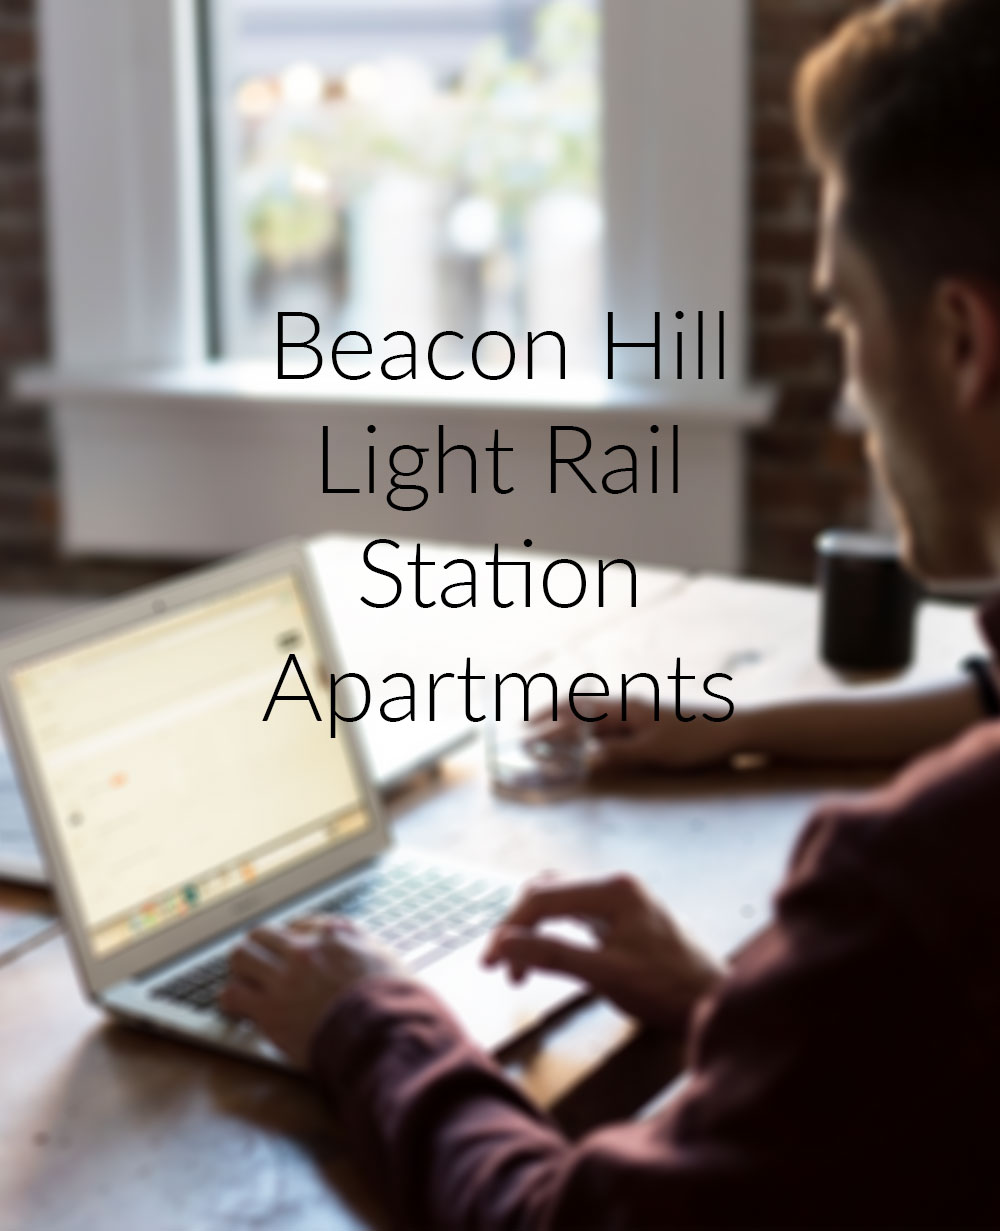 Beacon Hill Light Rail Station Apartments | Virginia Calvin | Seattle Real Estate